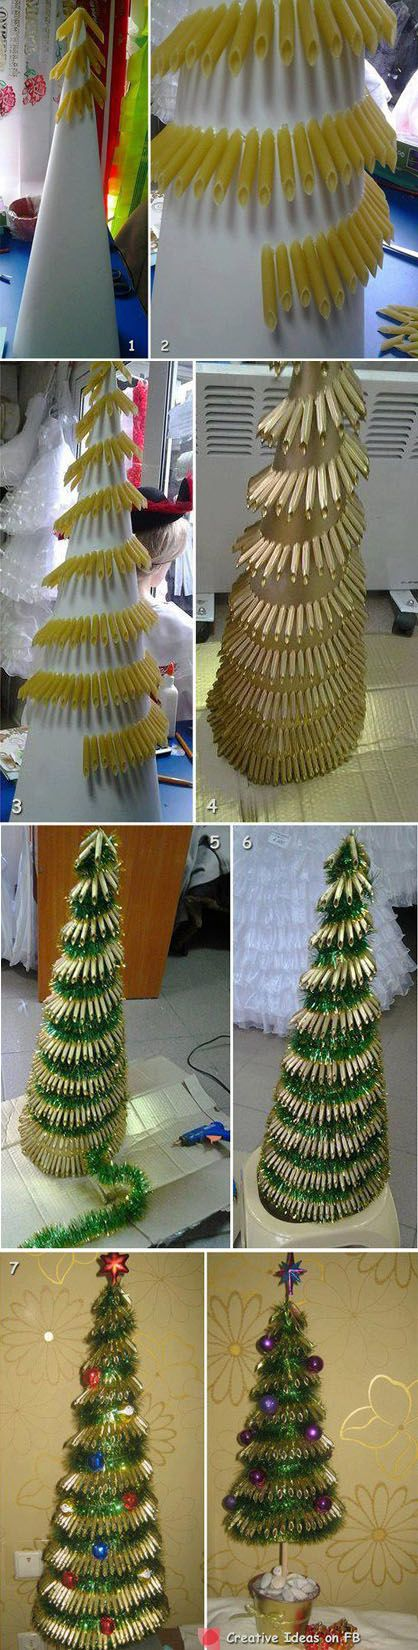 Pasta Christmas tree Crafty Ideas Pinterest Fun projects